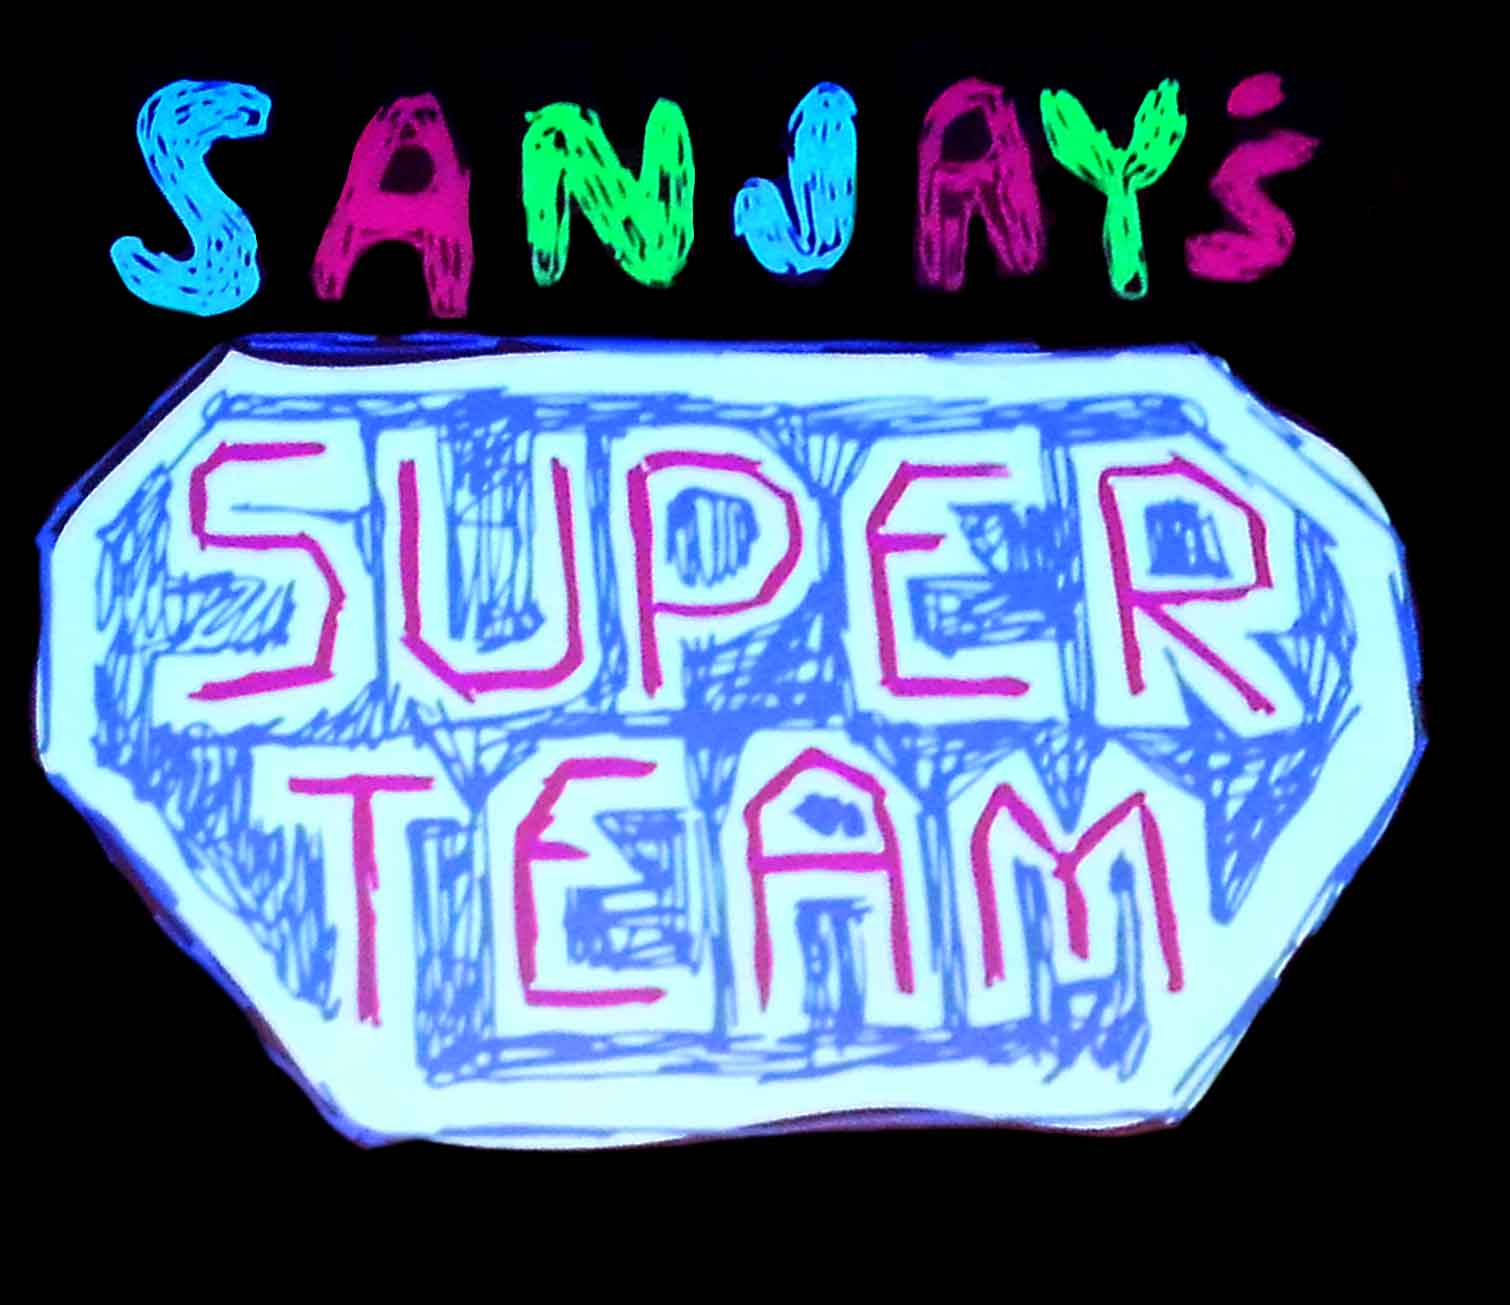 annecy pixar disney sanjay super team